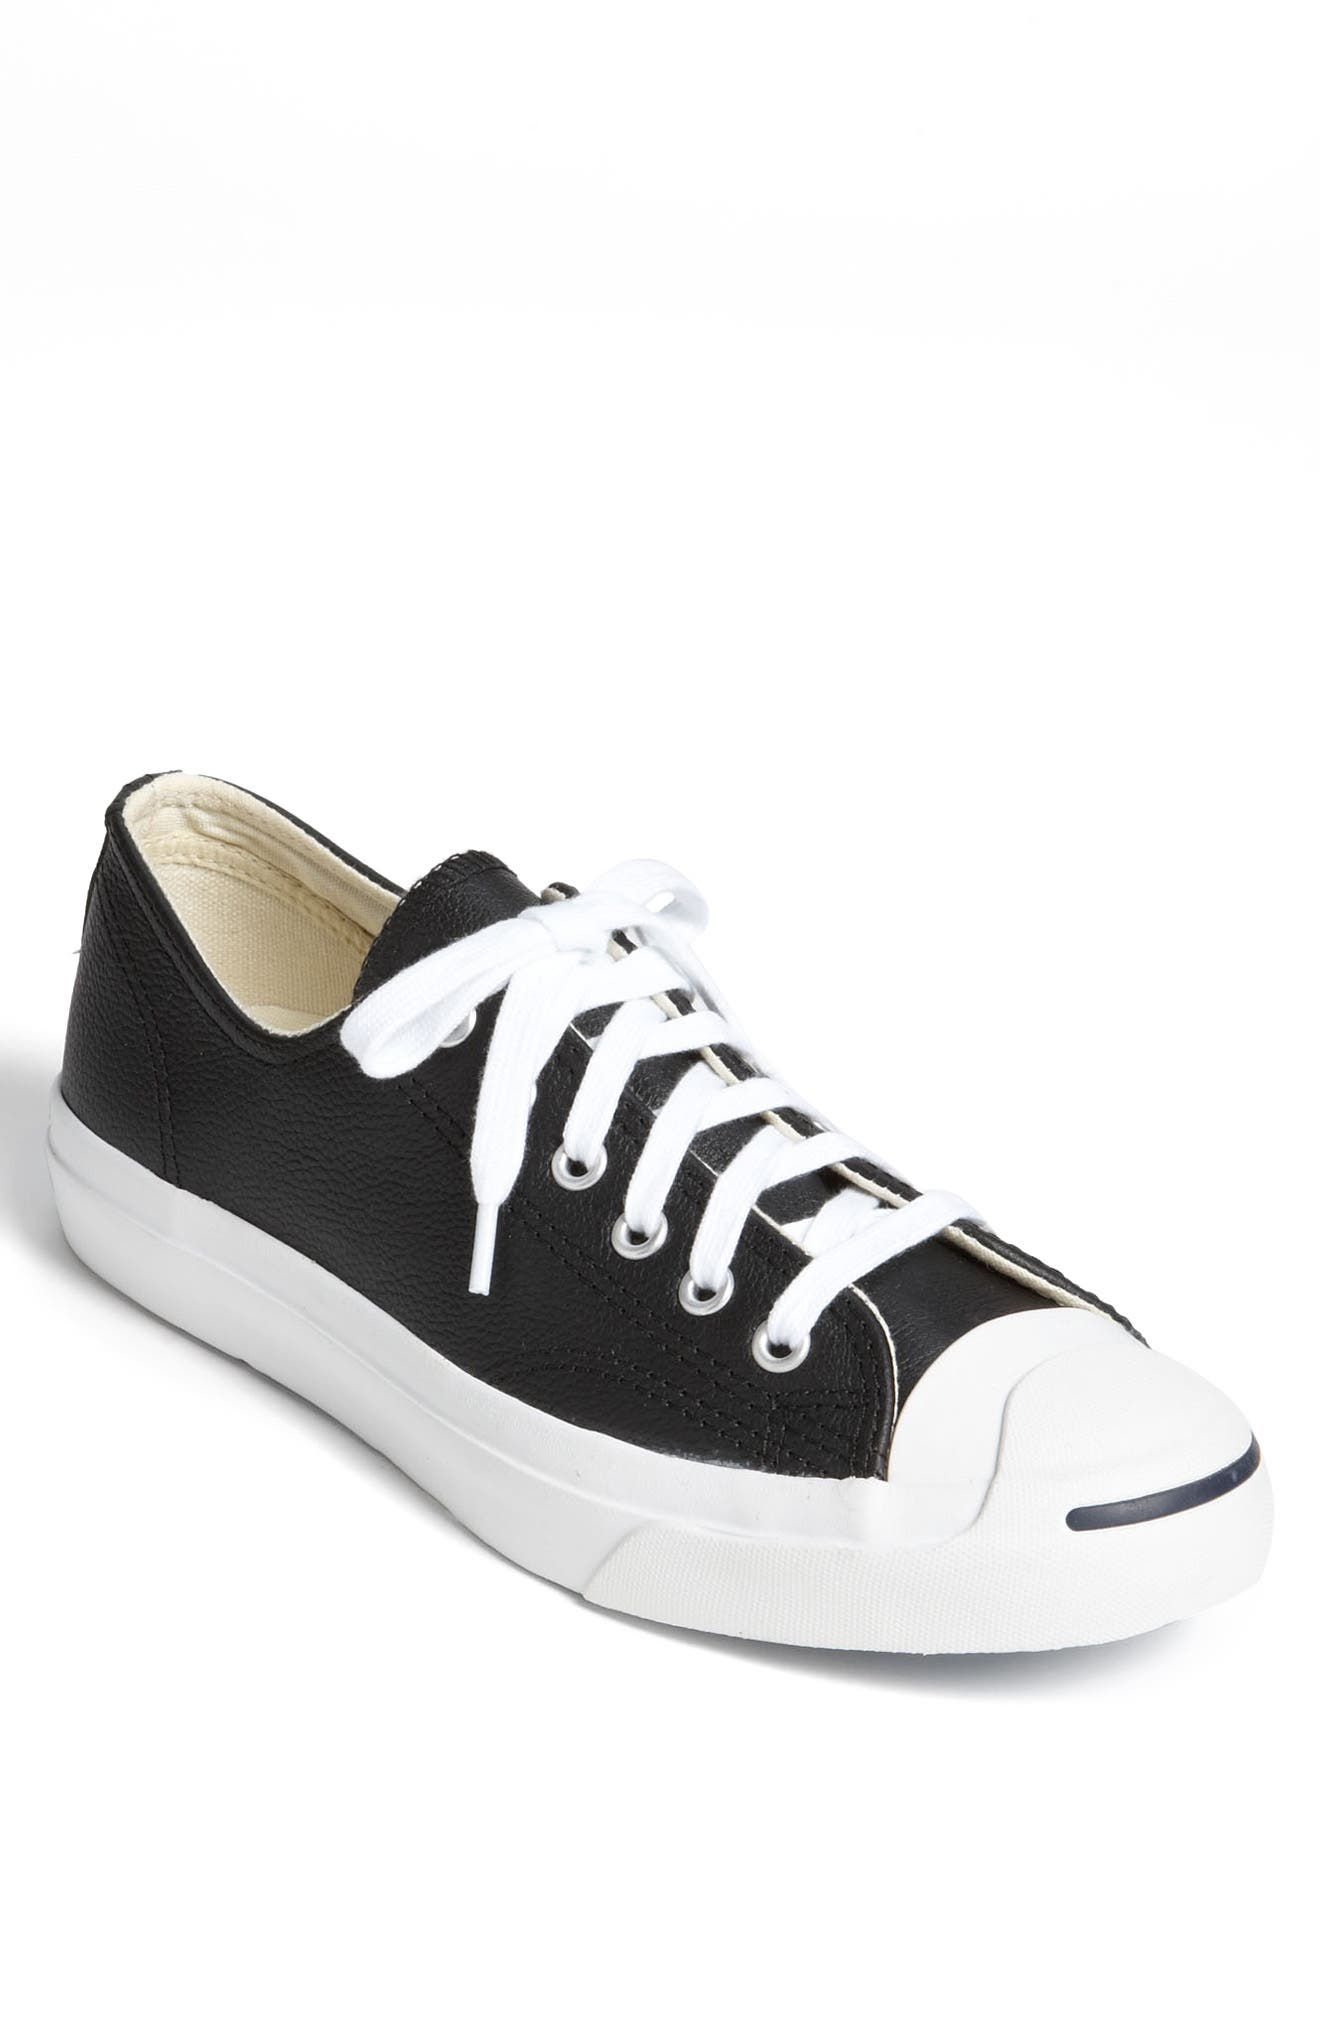 'Jack Purcell' Leather Sneaker,                         Main,                         color, BLACK/ WHITE